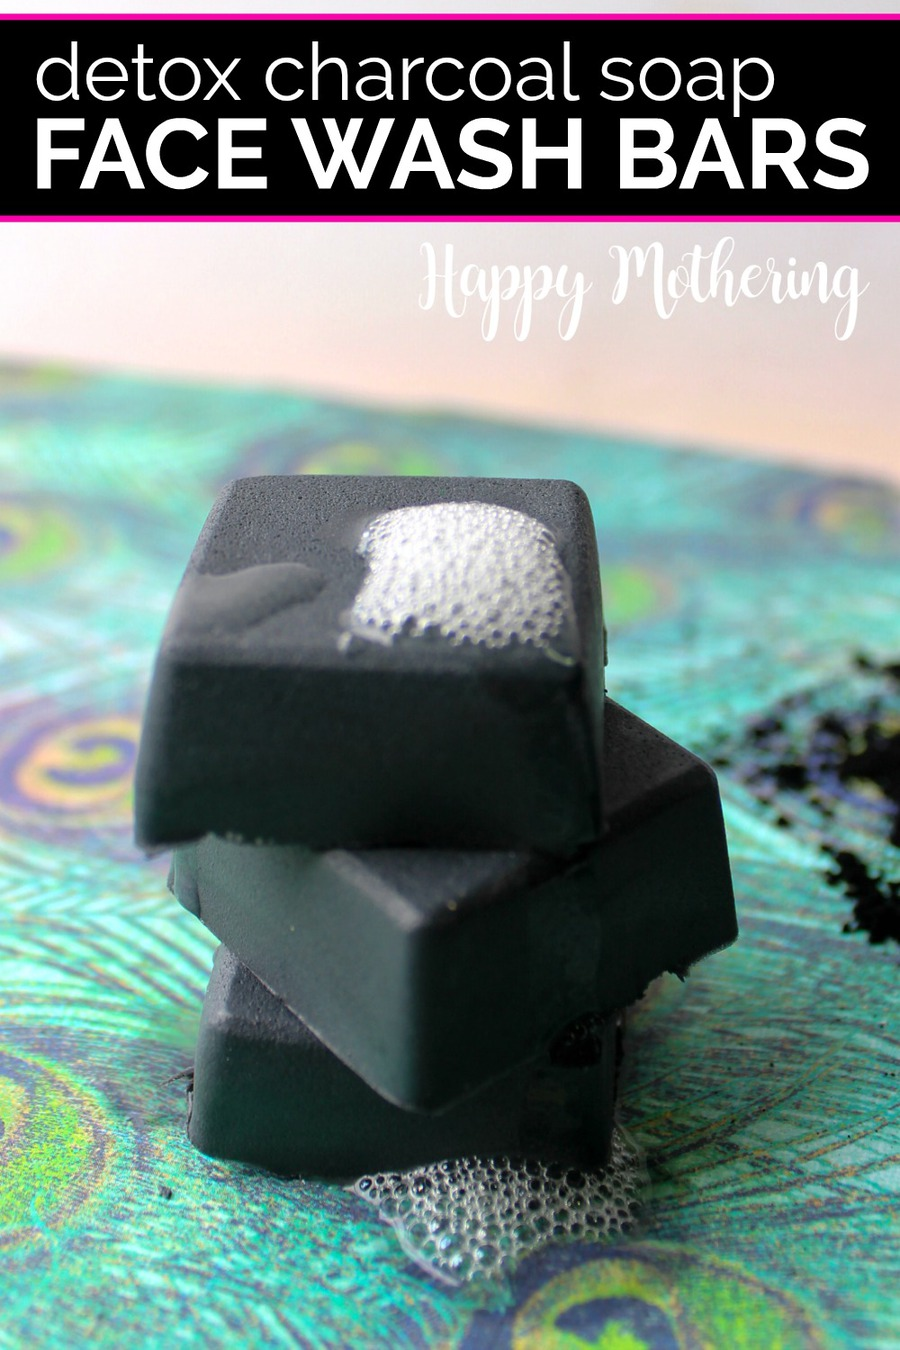 Three activated charcoal face wash bars lathered up